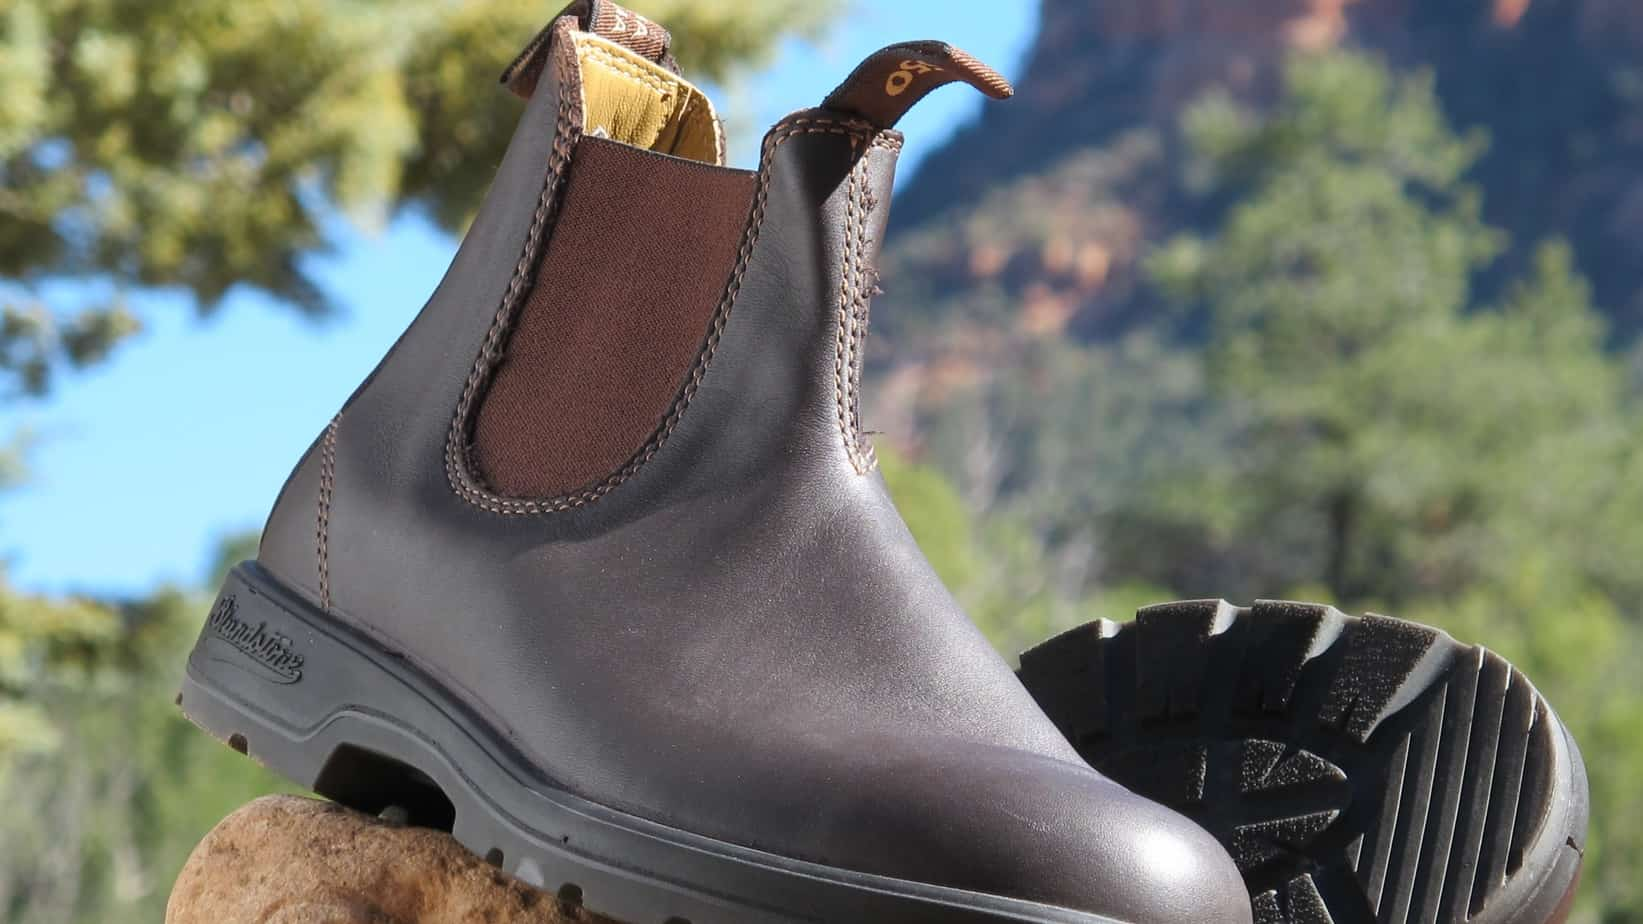 where to buy blundstones in sydney - photo#31